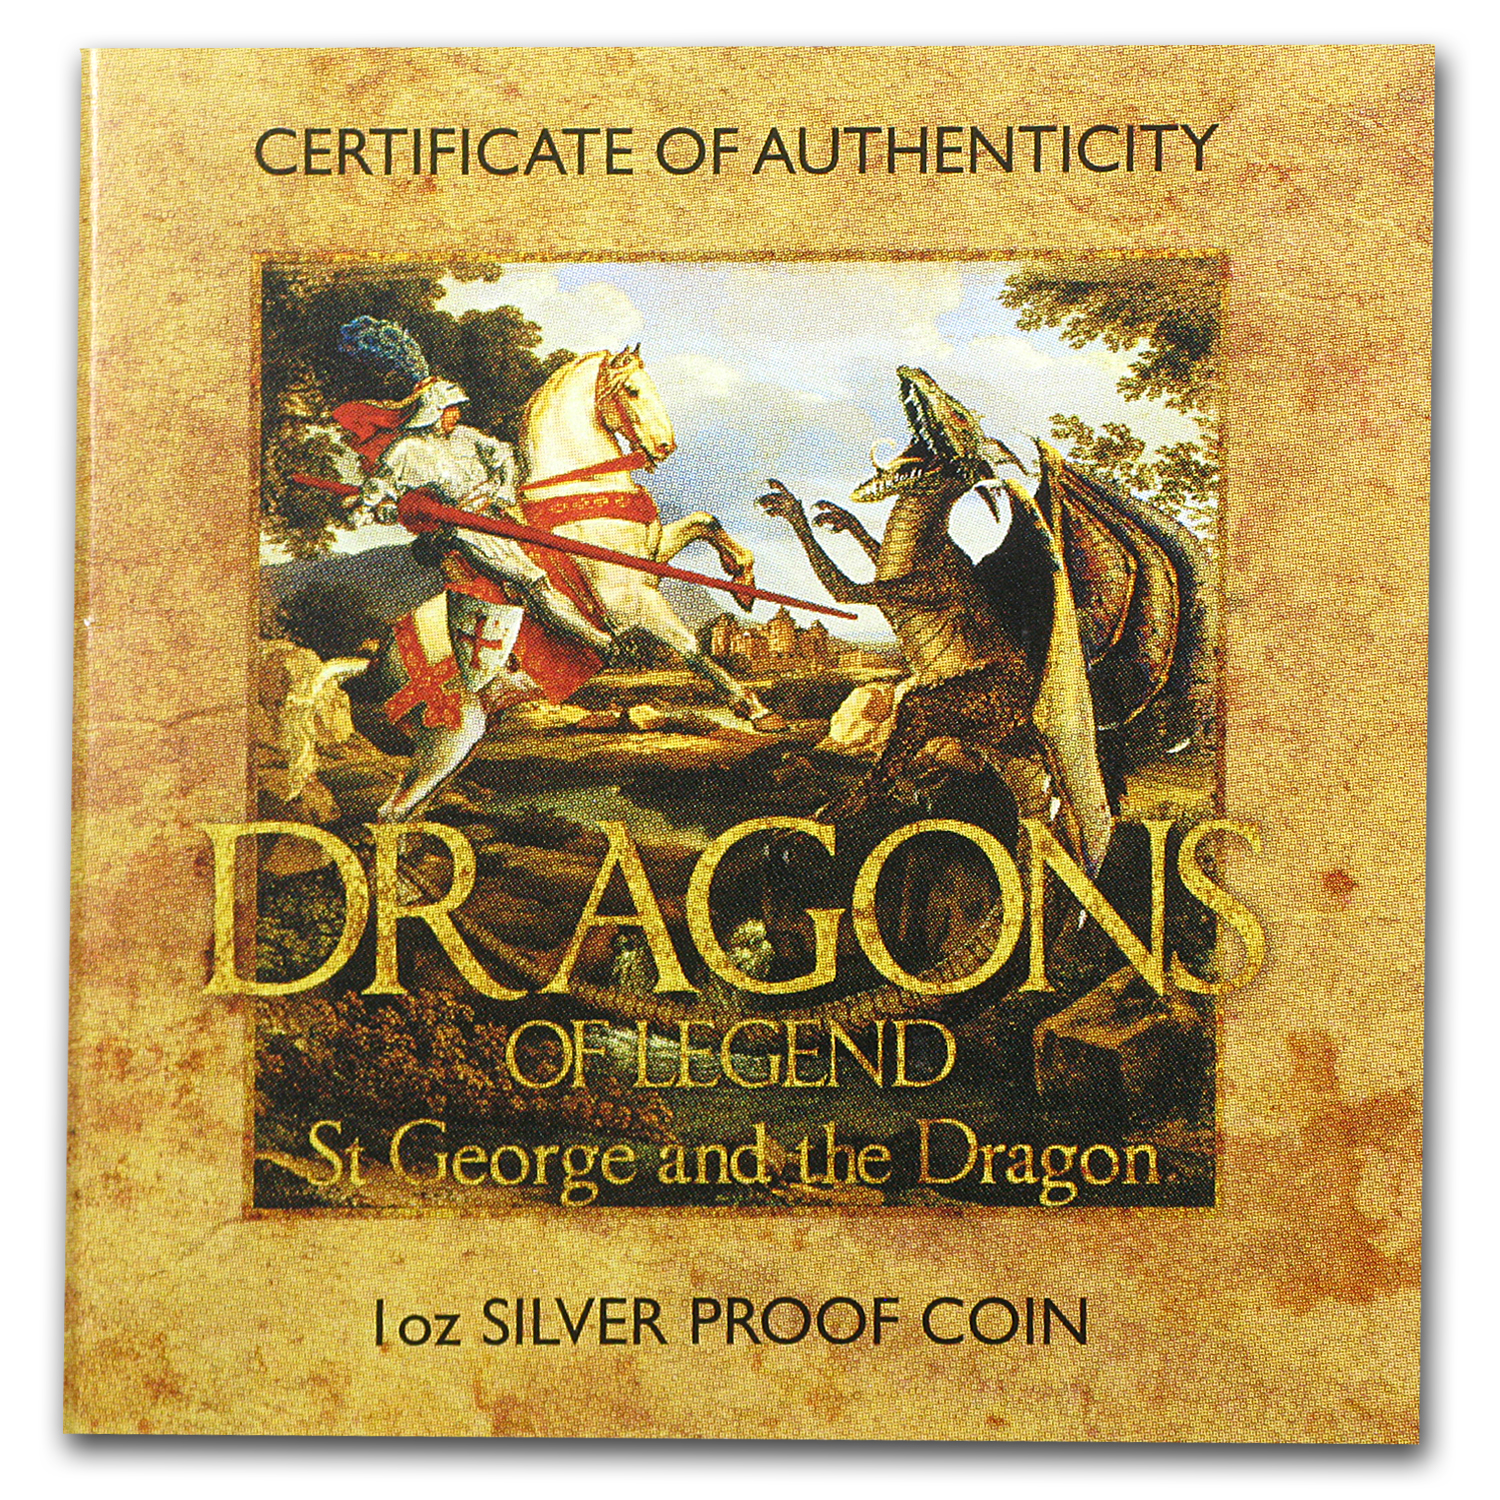 2012 1 oz Proof Silver Dragons of Legend - St George & the Dragon